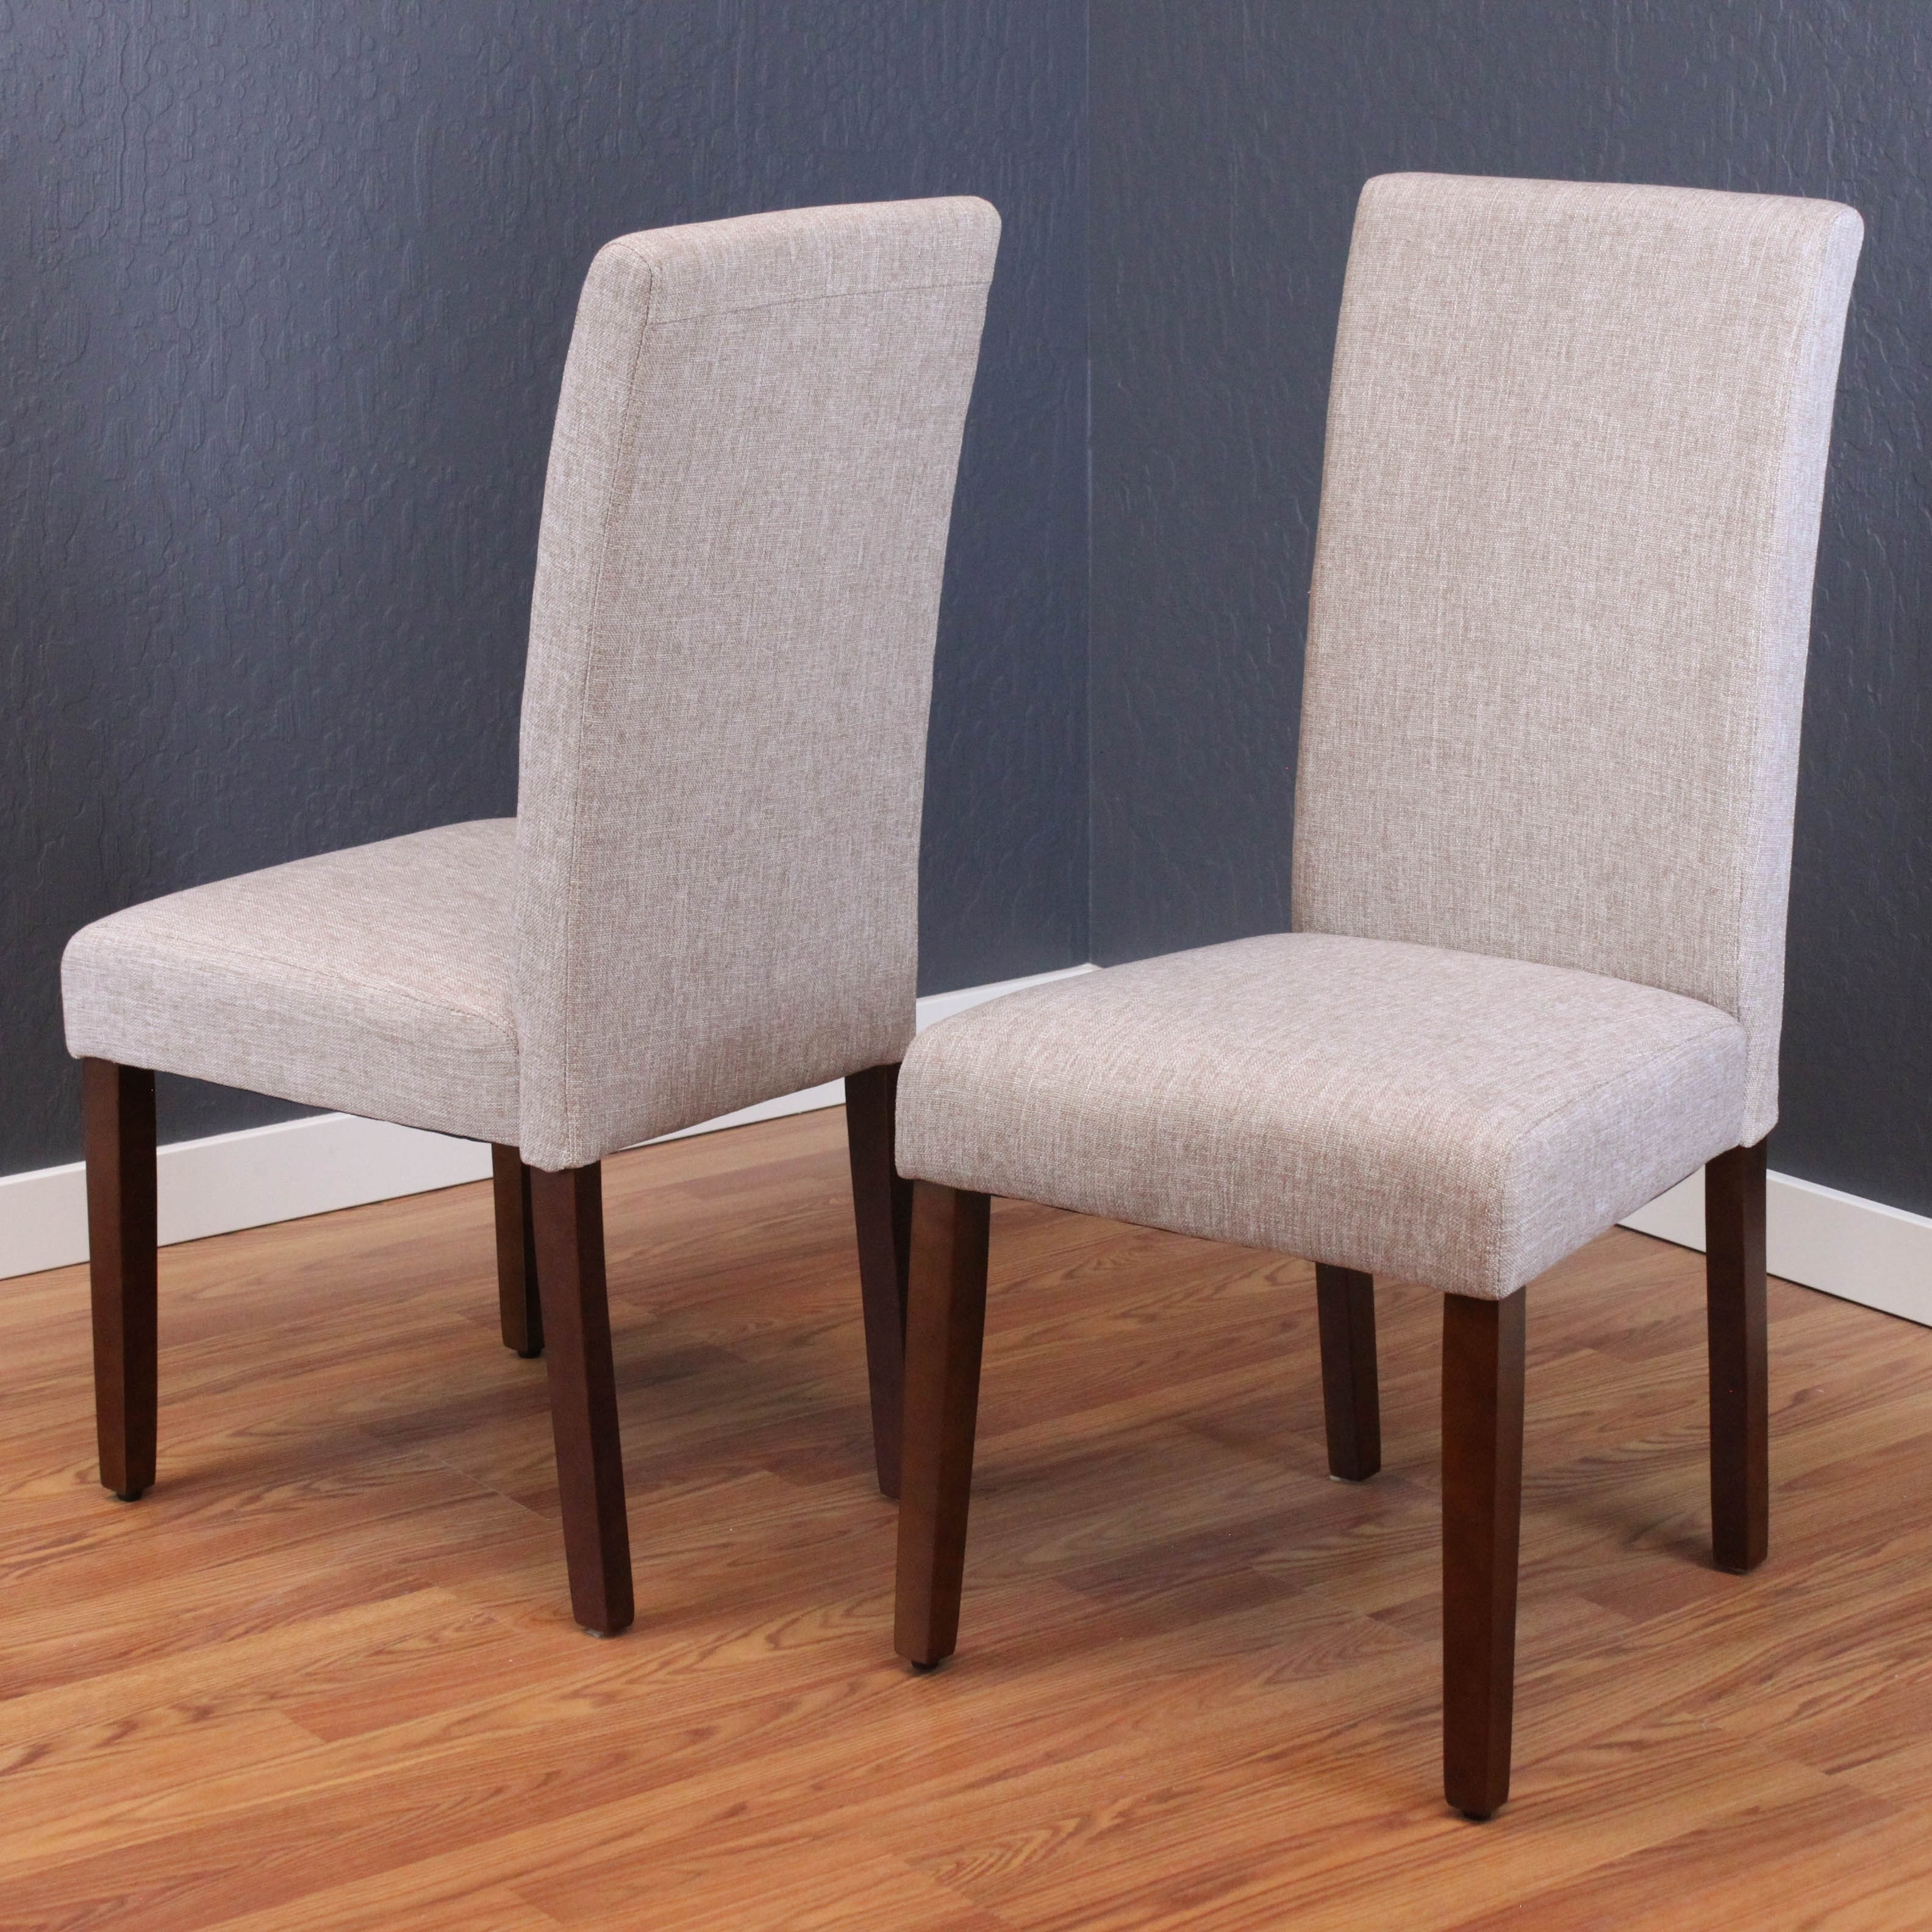 Shop Seville Linen Dining Chairs (Set of 2) - Free Shipping Today - Overstock - 5954255 & Shop Seville Linen Dining Chairs (Set of 2) - Free Shipping Today ...